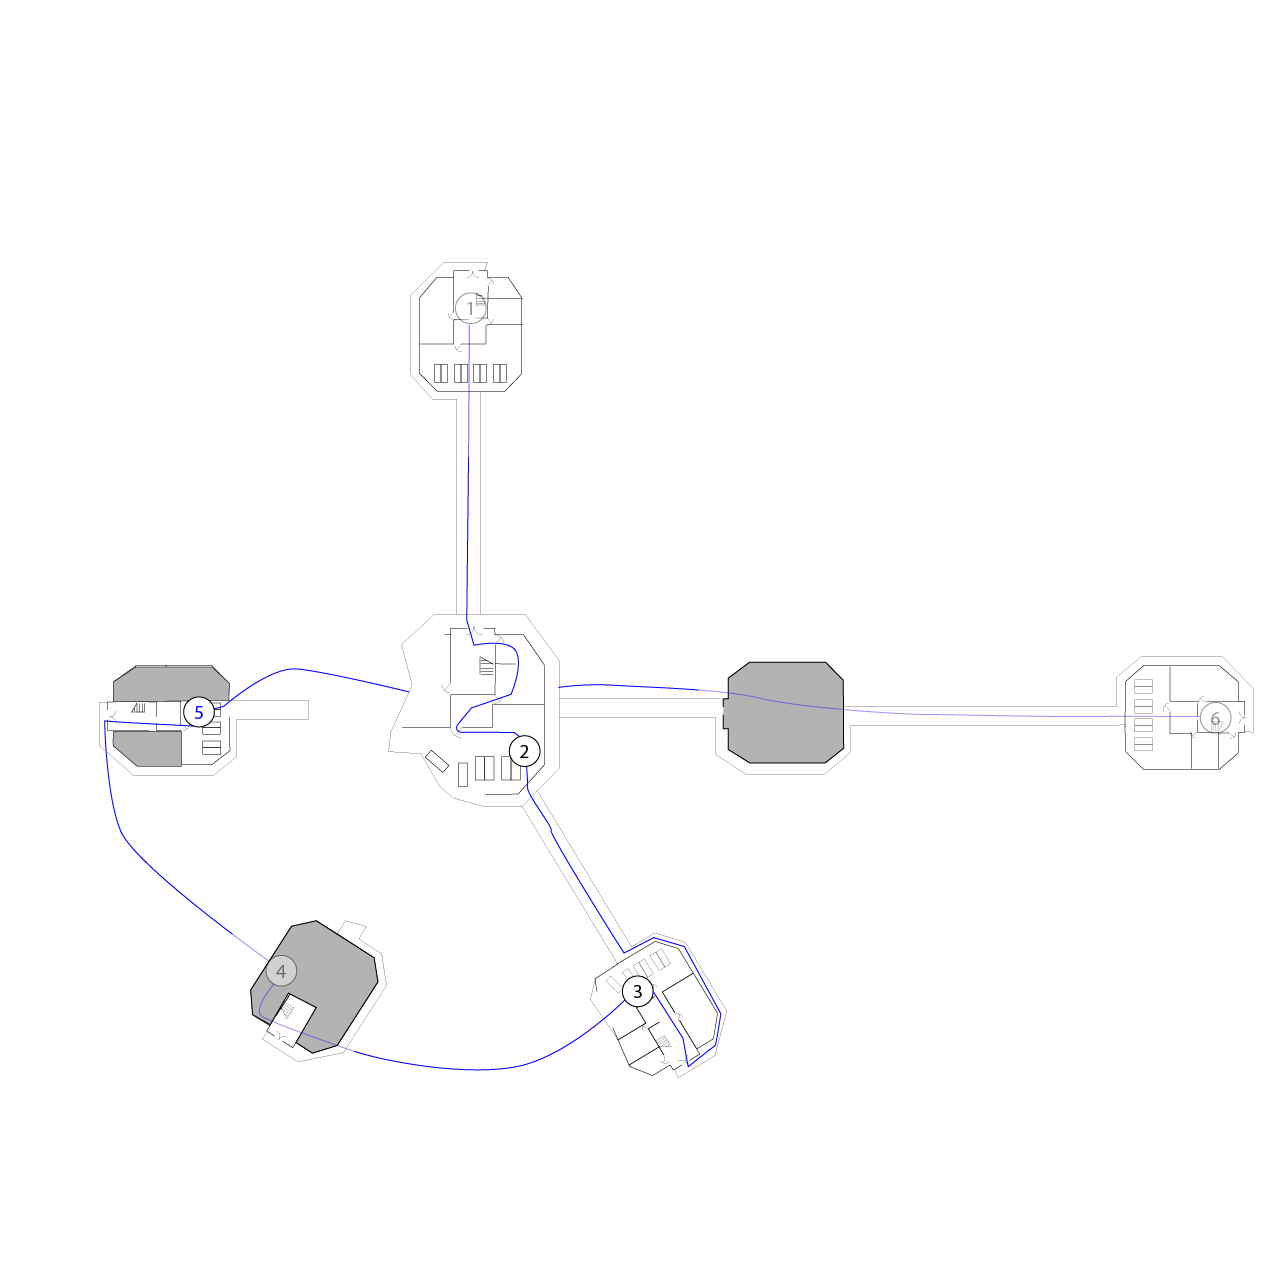 Initial Layout